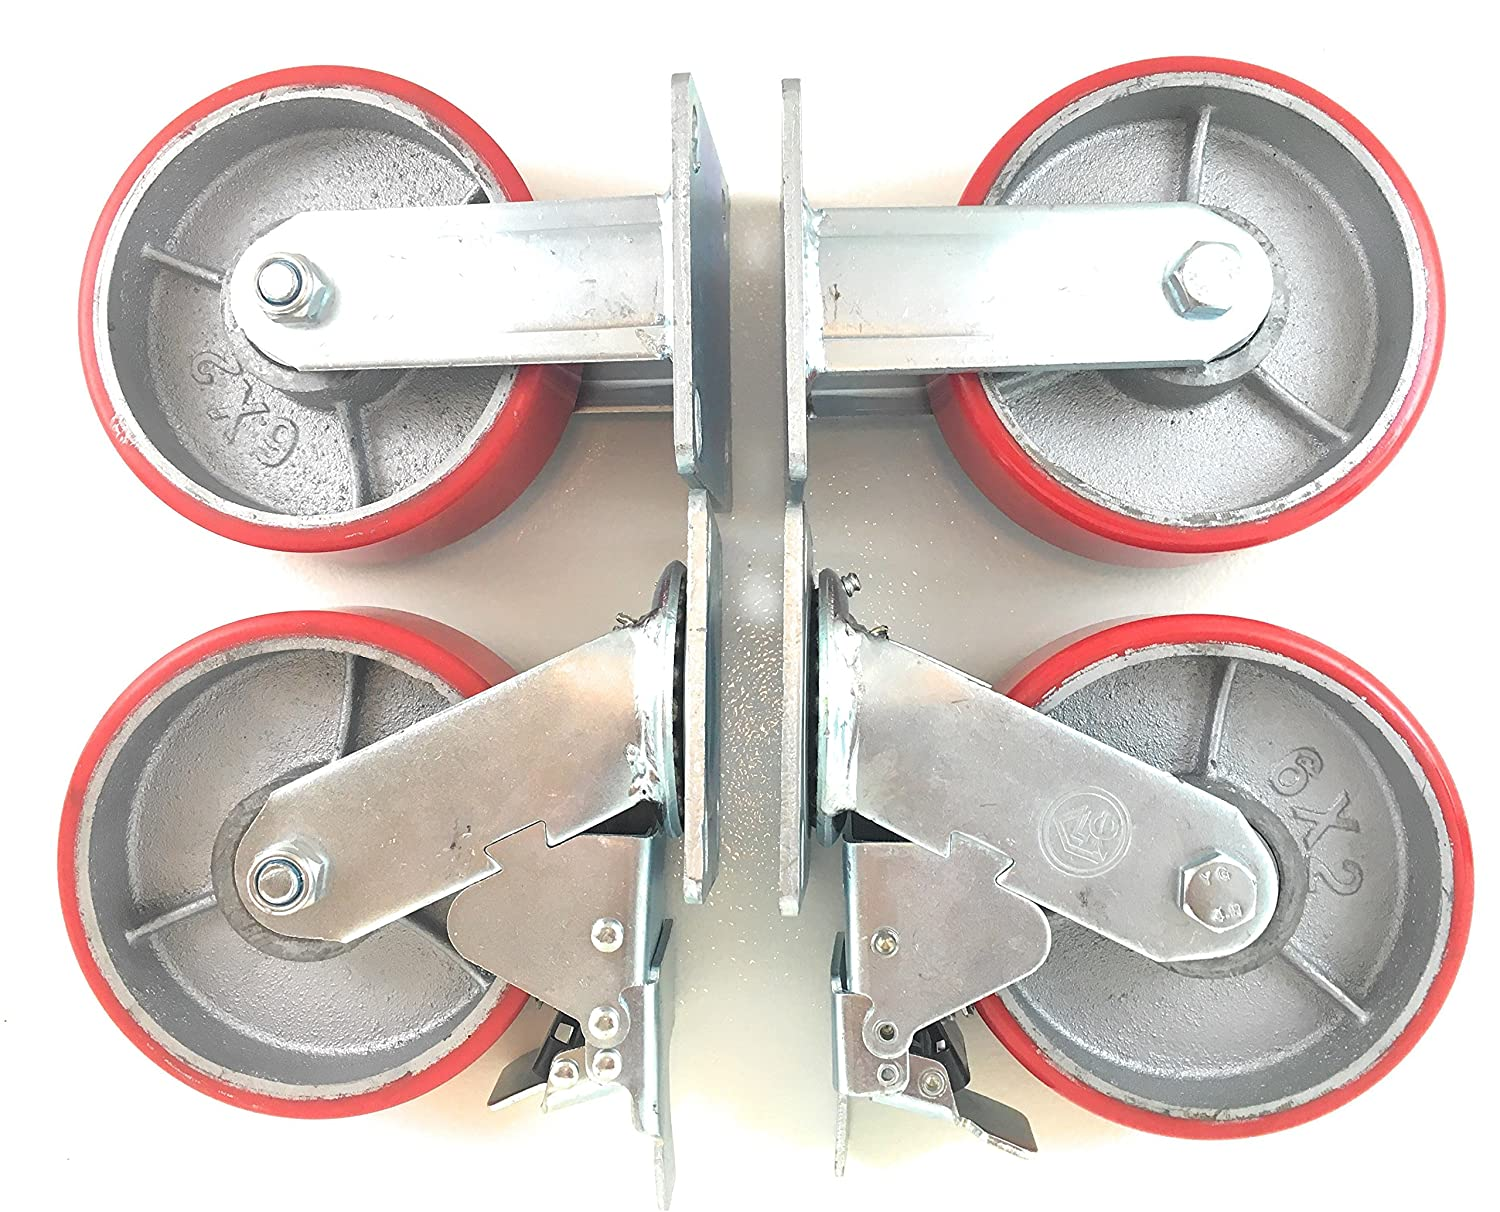 """6"""" x 2"""" Heavy Duty Metal CASTERS with Poly Tread - Set of 4 Wheels, 2 Fixed, 2 Swivel w/Brakes - Swivel Casters are Locking - Foghorn Construction"""